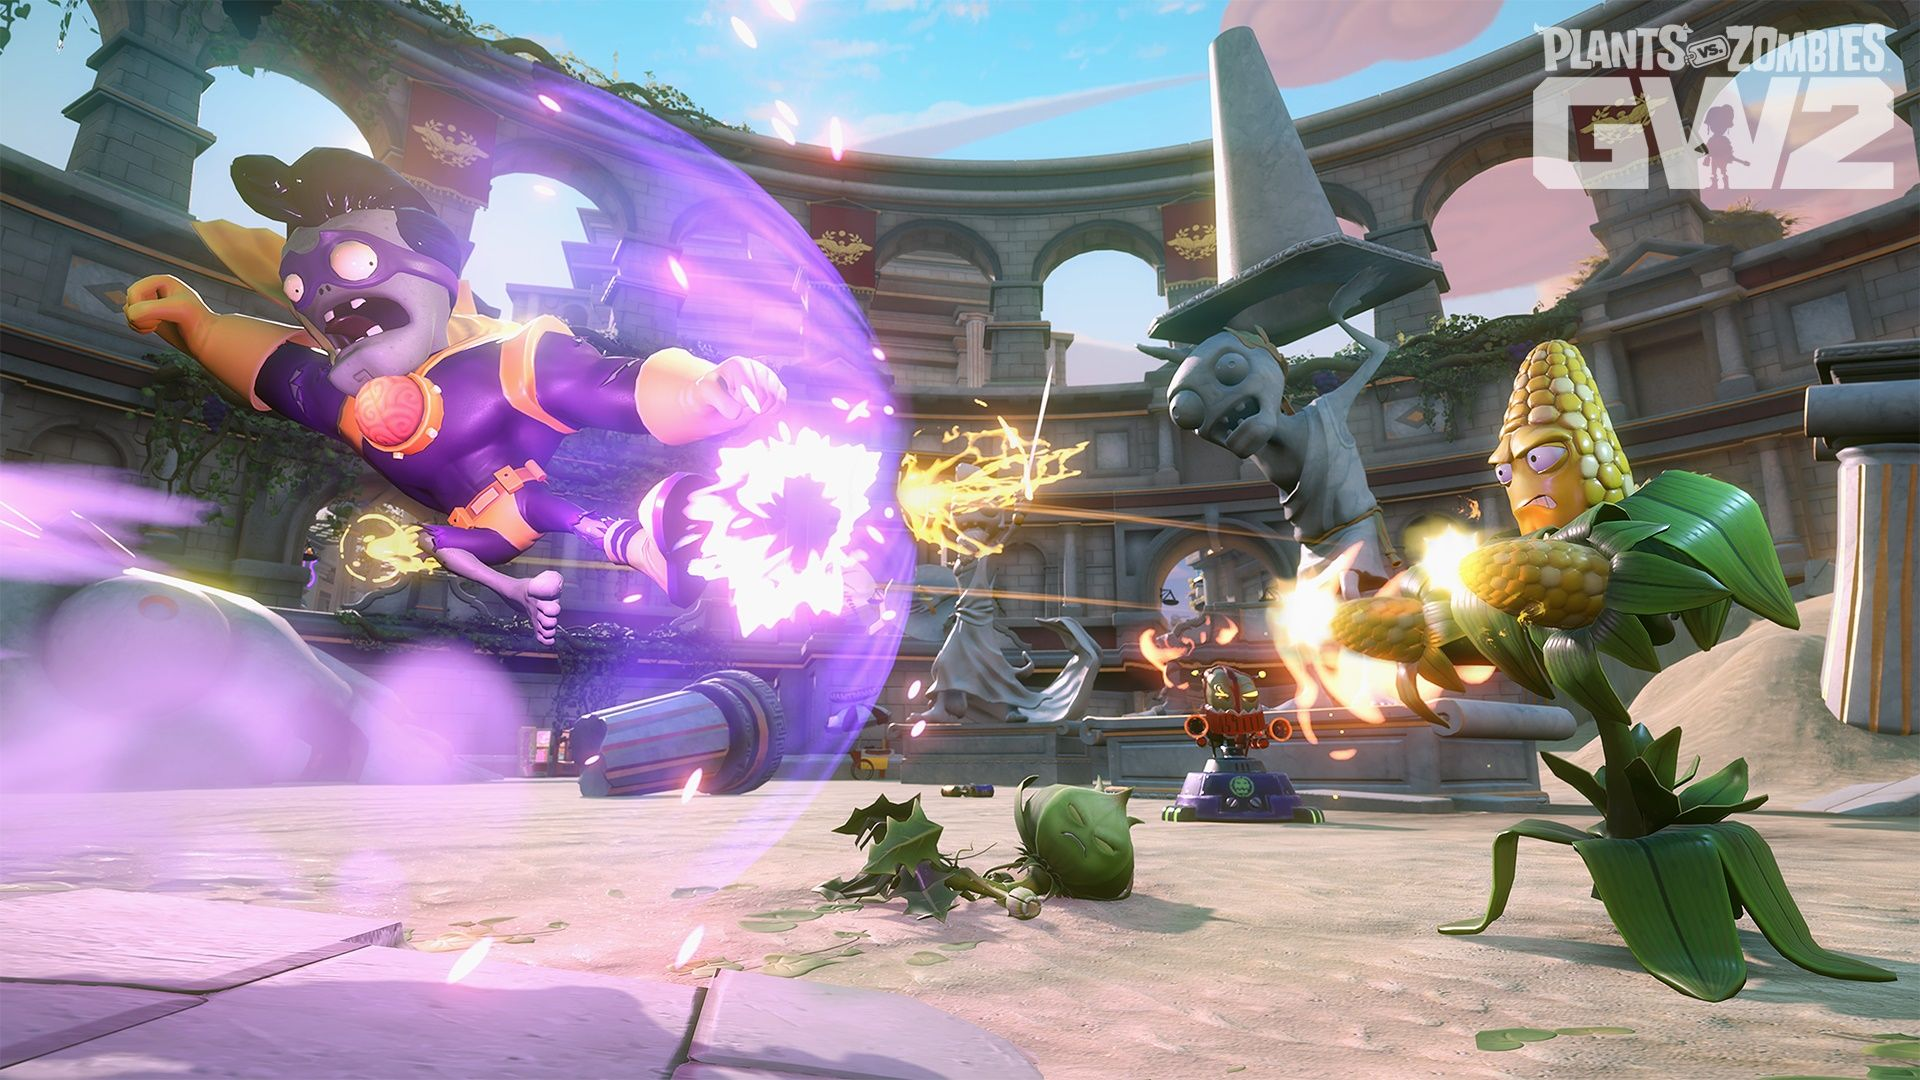 Jeux Video Plants Vs Zombies Garden Warfare 2 Annonce Et Trailer